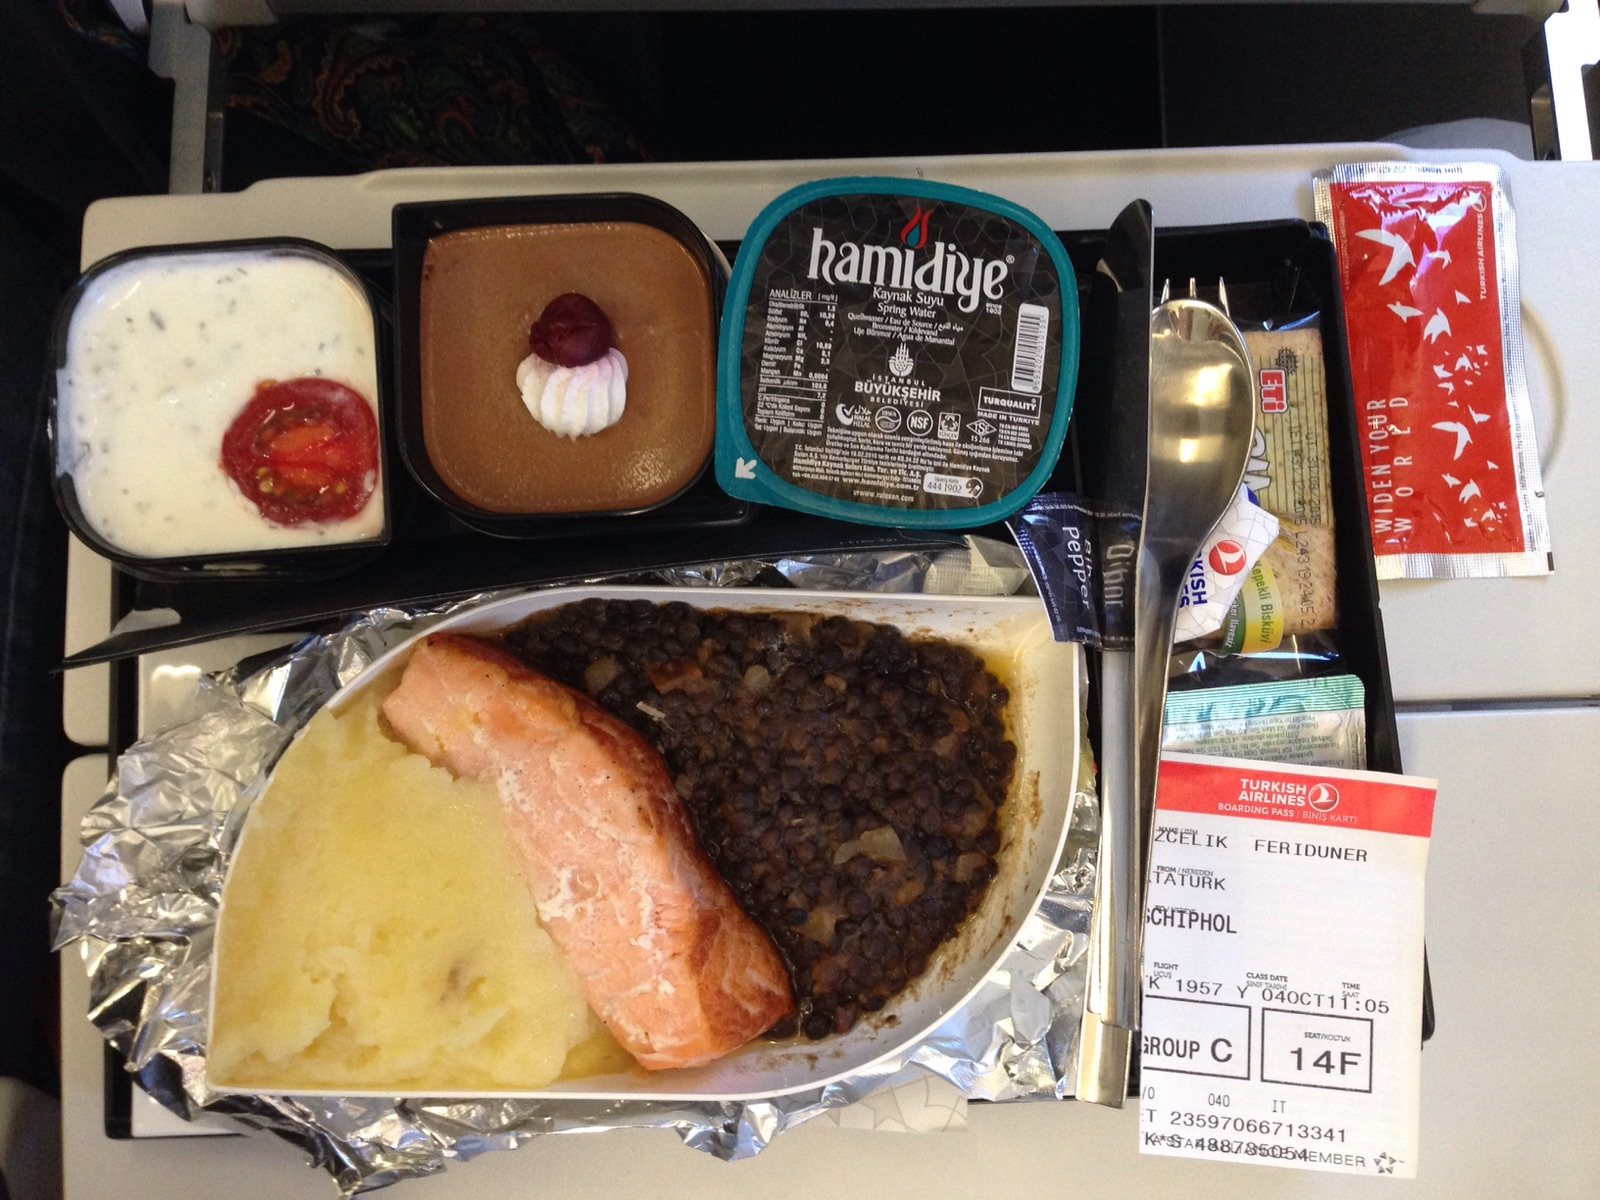 THY_Turkish Airlines_Inflight Meal_Economy Class_Istanbul-Amsterdam_Oct 2015_002